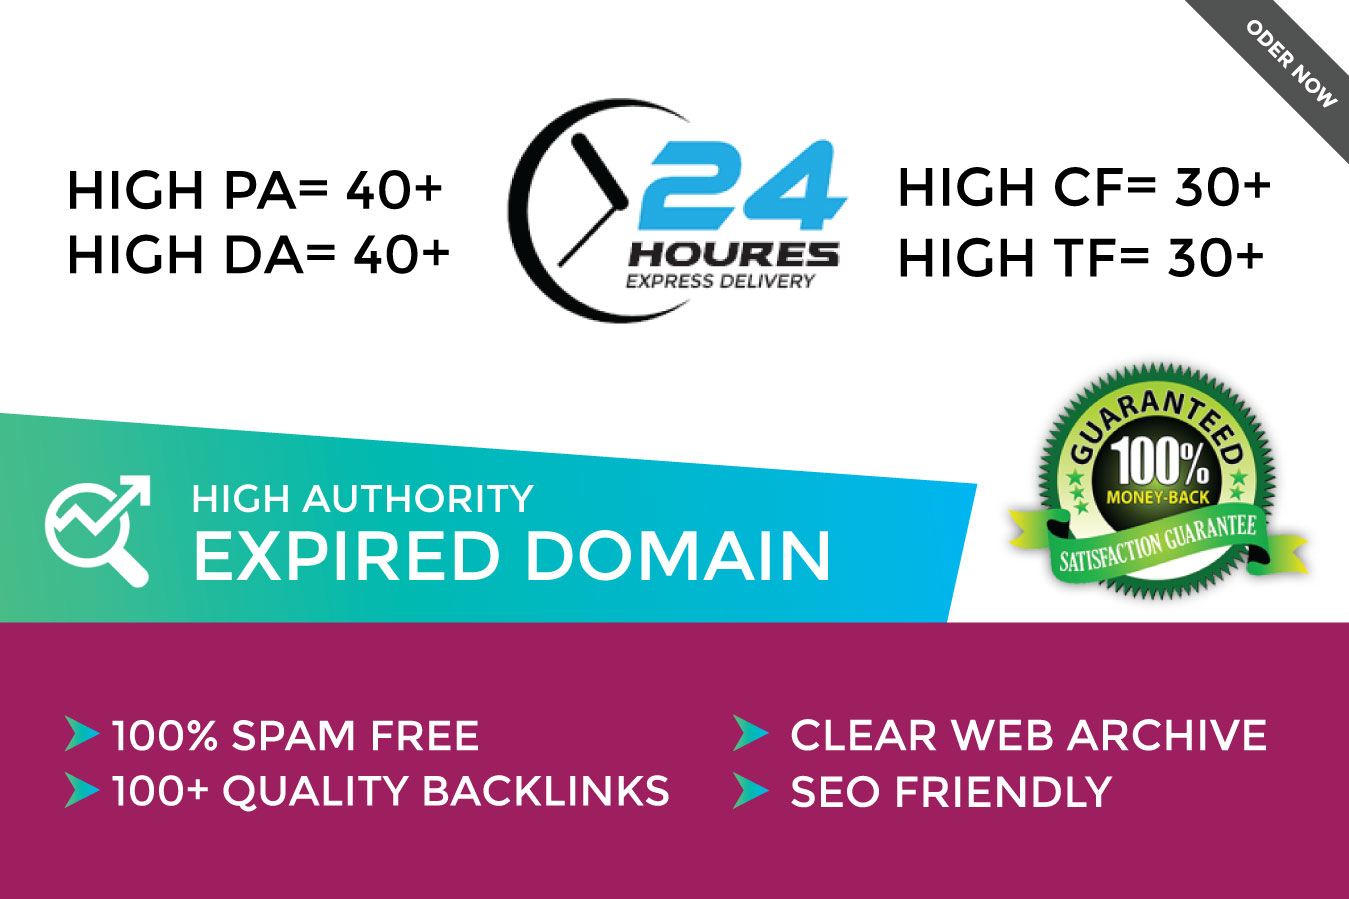 research SEO friendly expired domain